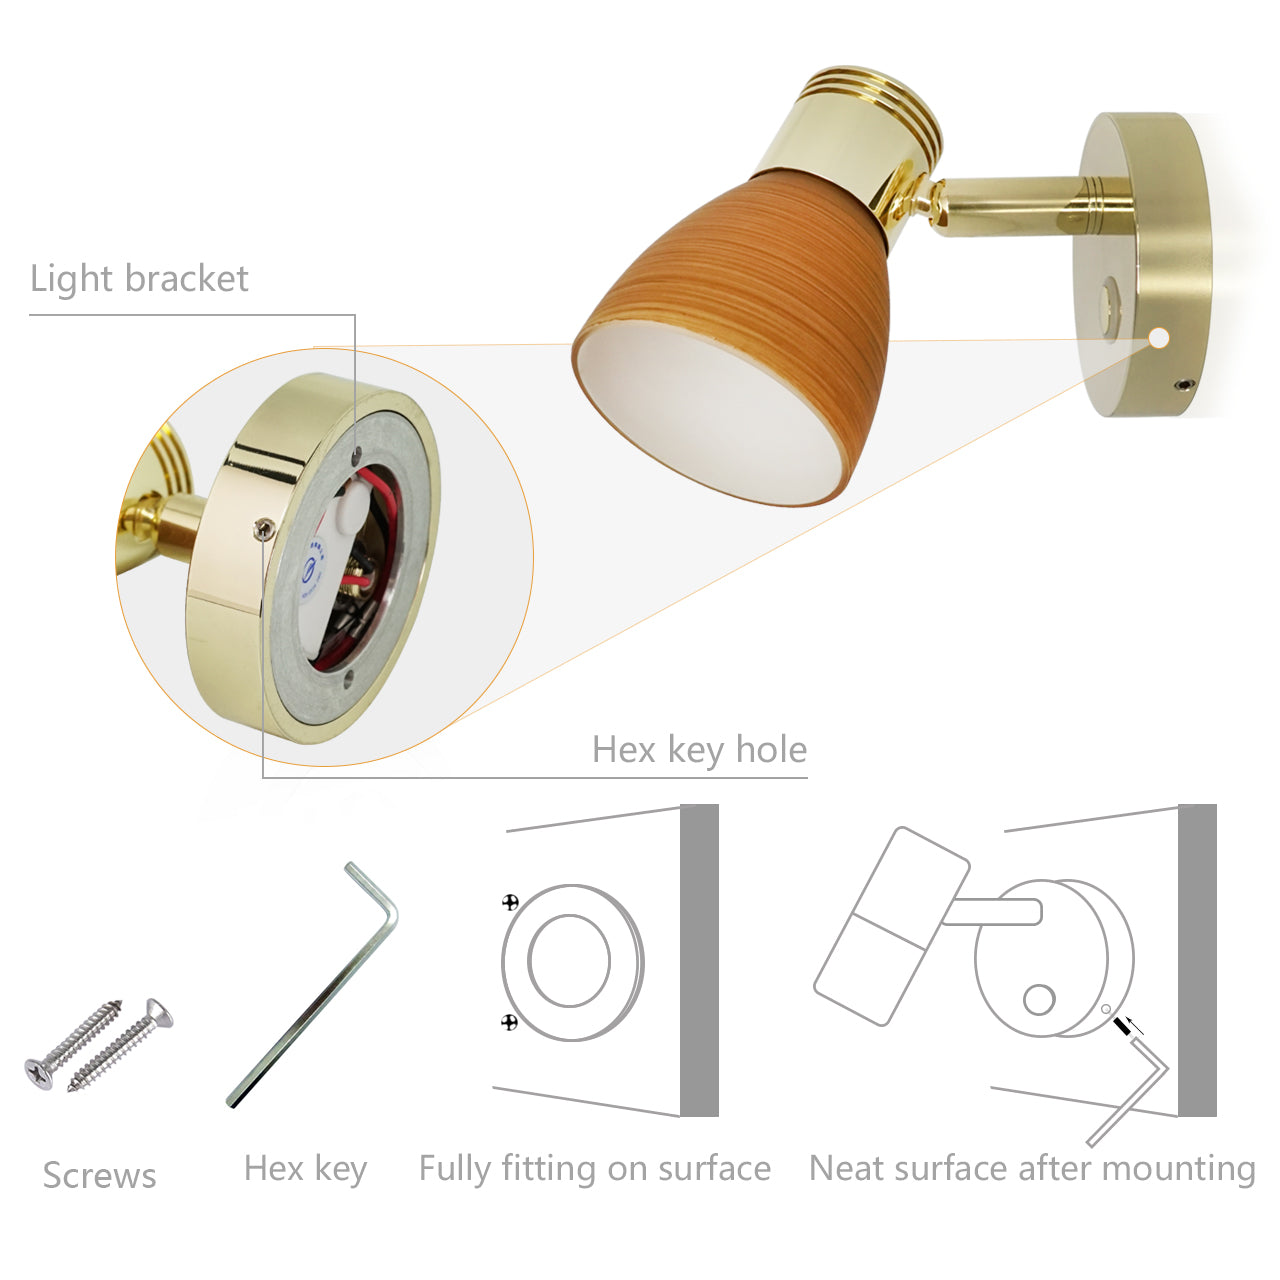 12V Reading Light Teak Color Glass Dimmer Touch Adjustable with/without USB Port - GenuineMarine